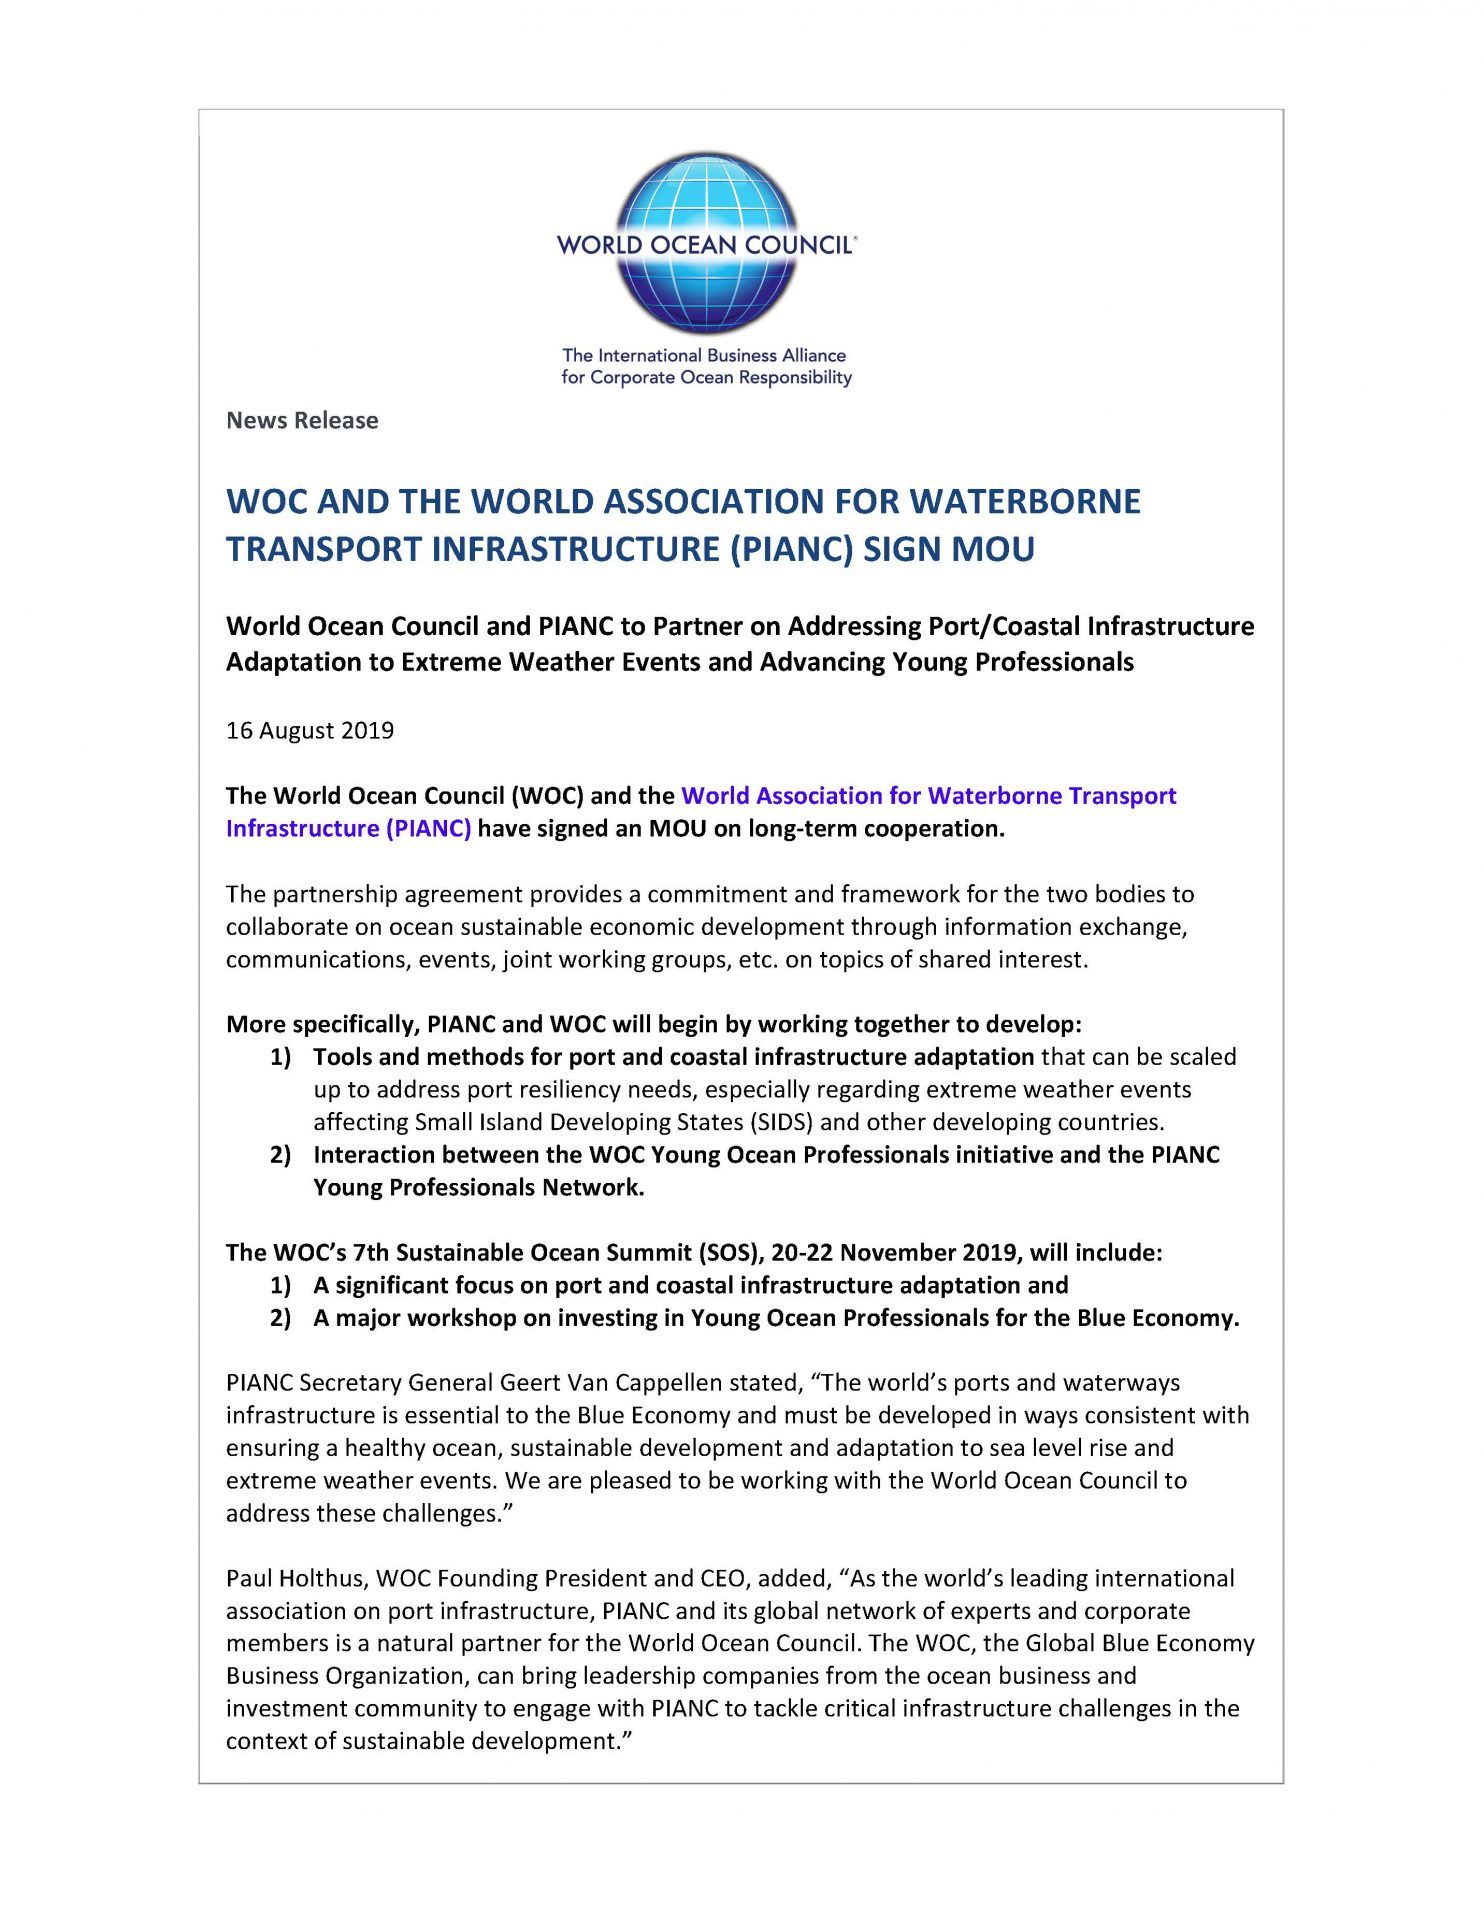 WOC and The World Association for Waterborne Transport Infrastructure (PIANC) Sign MOU - 16 August 2019